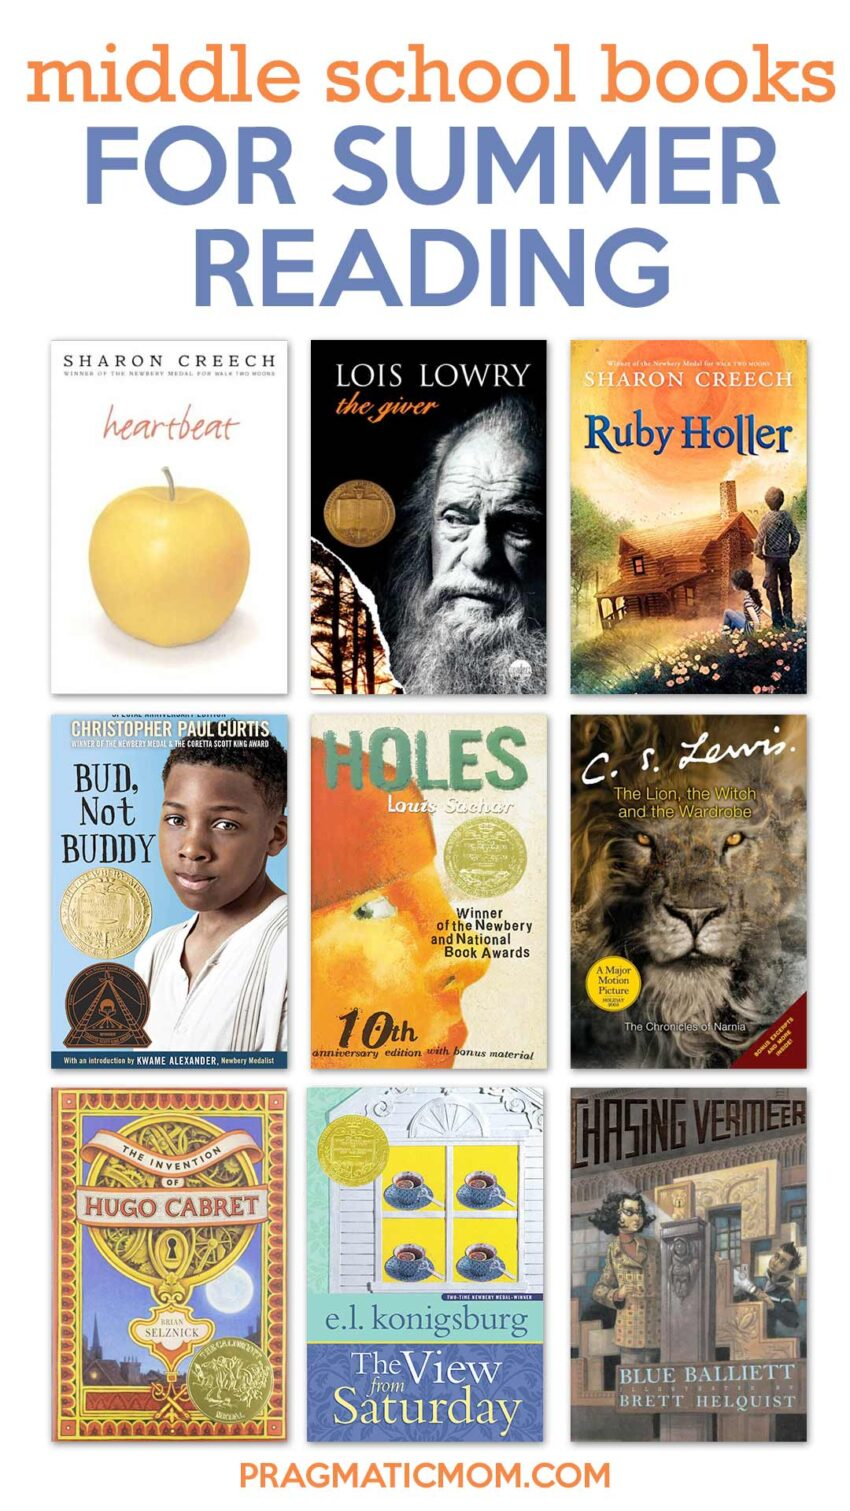 Best Middle School Books for Summer Reading